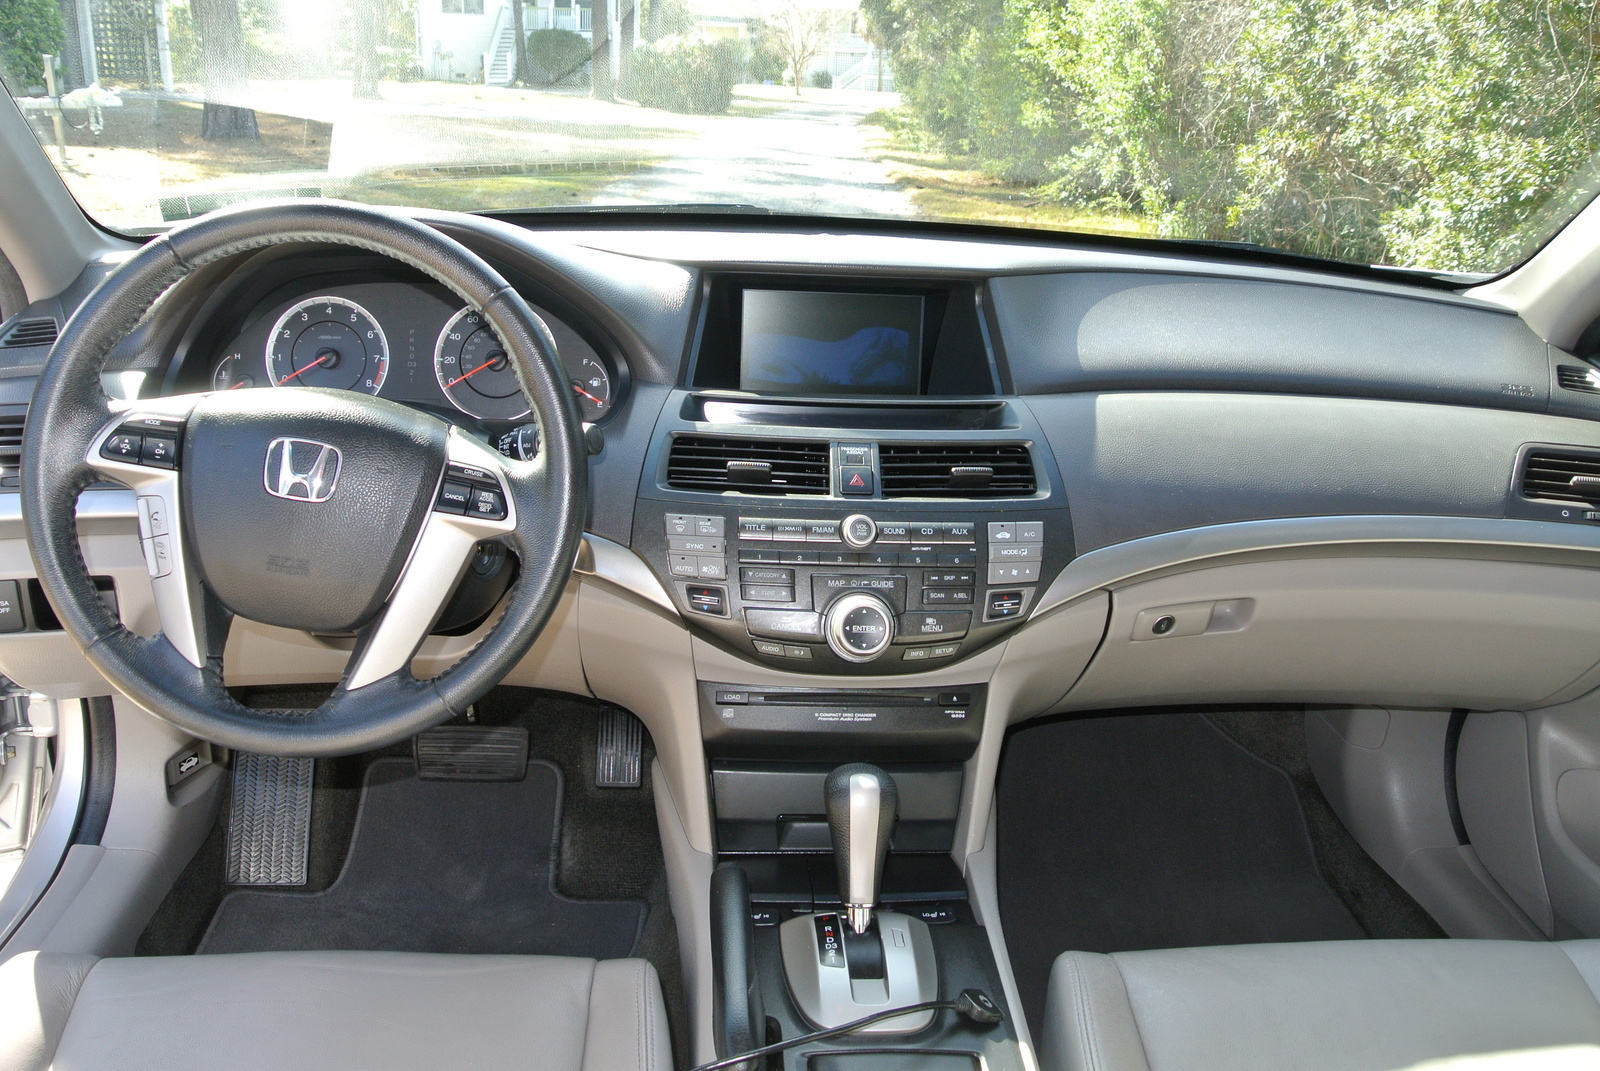 2010 Honda Accord Interior Pictures Cargurus